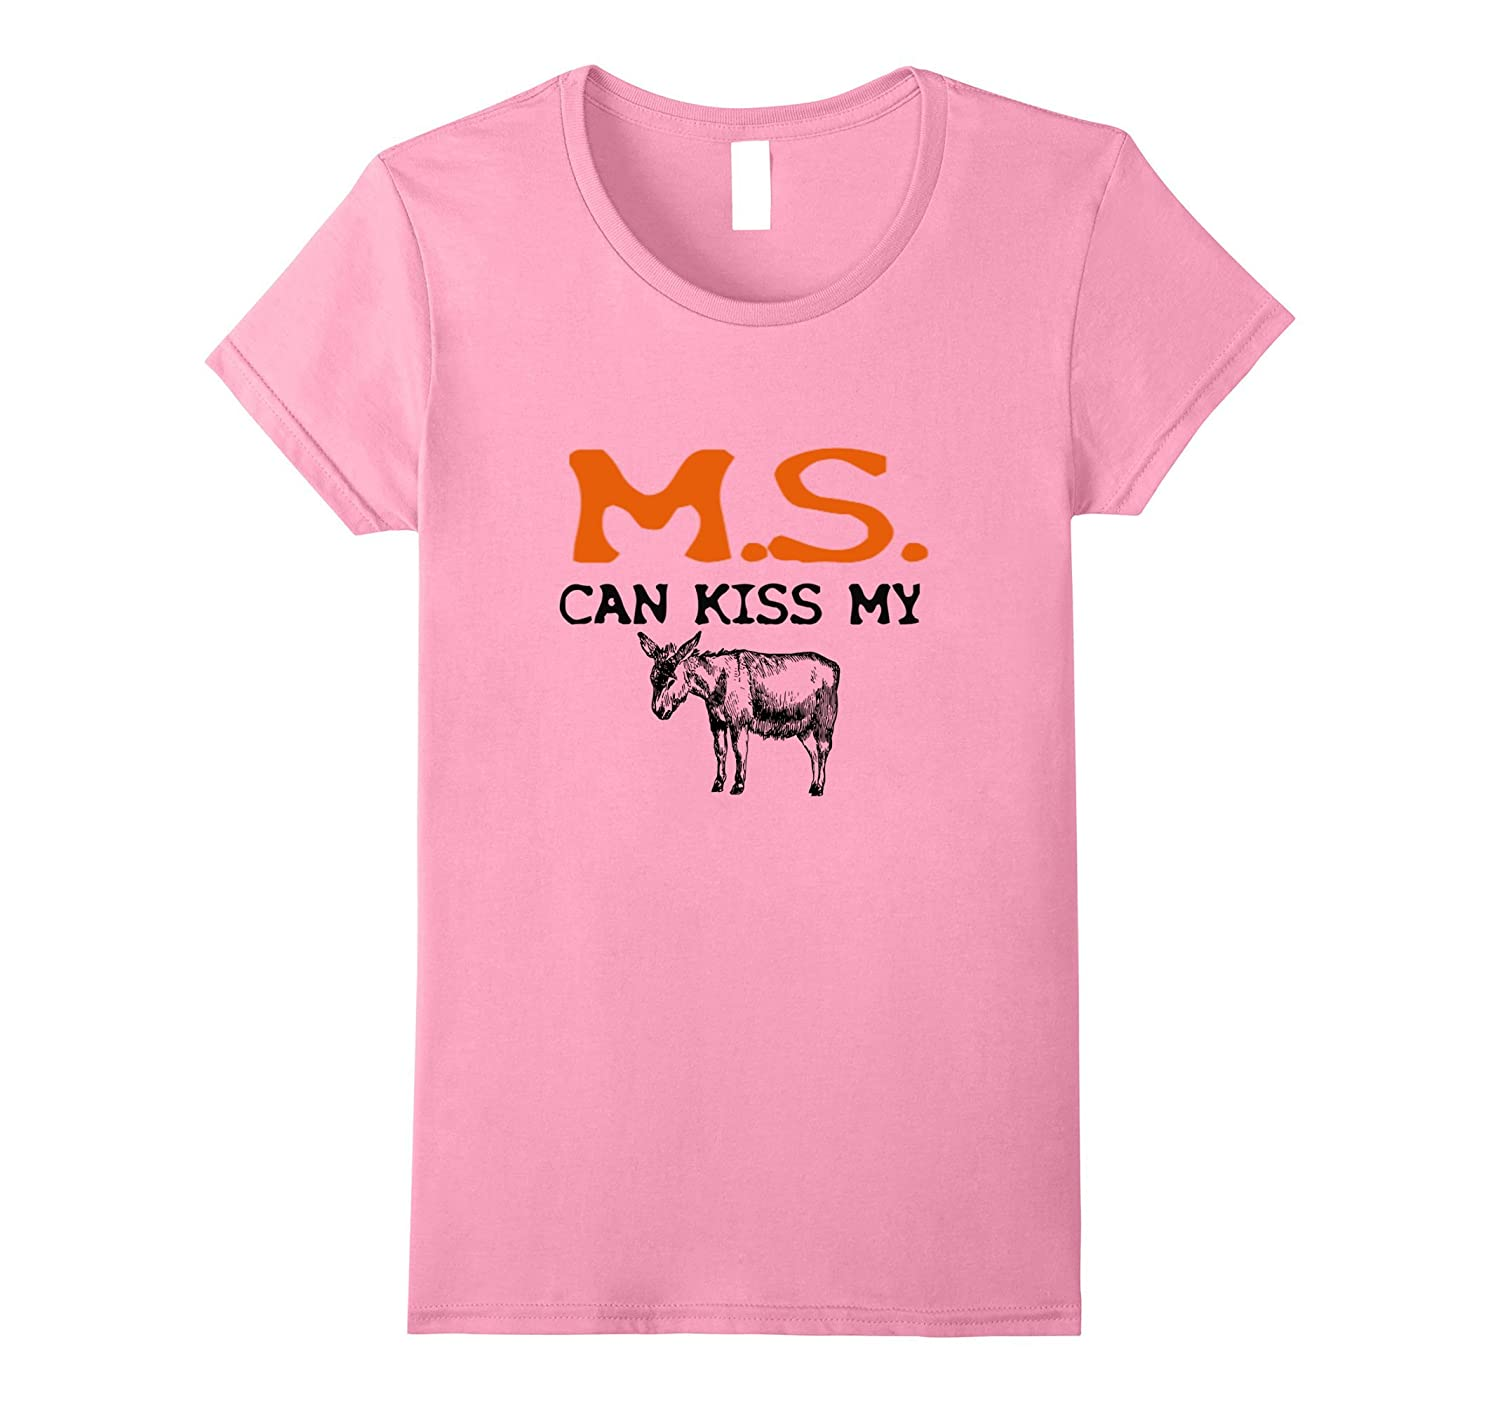 Multiple Sclerosis Ms Awareness Support T Shirt Multimv Cool T